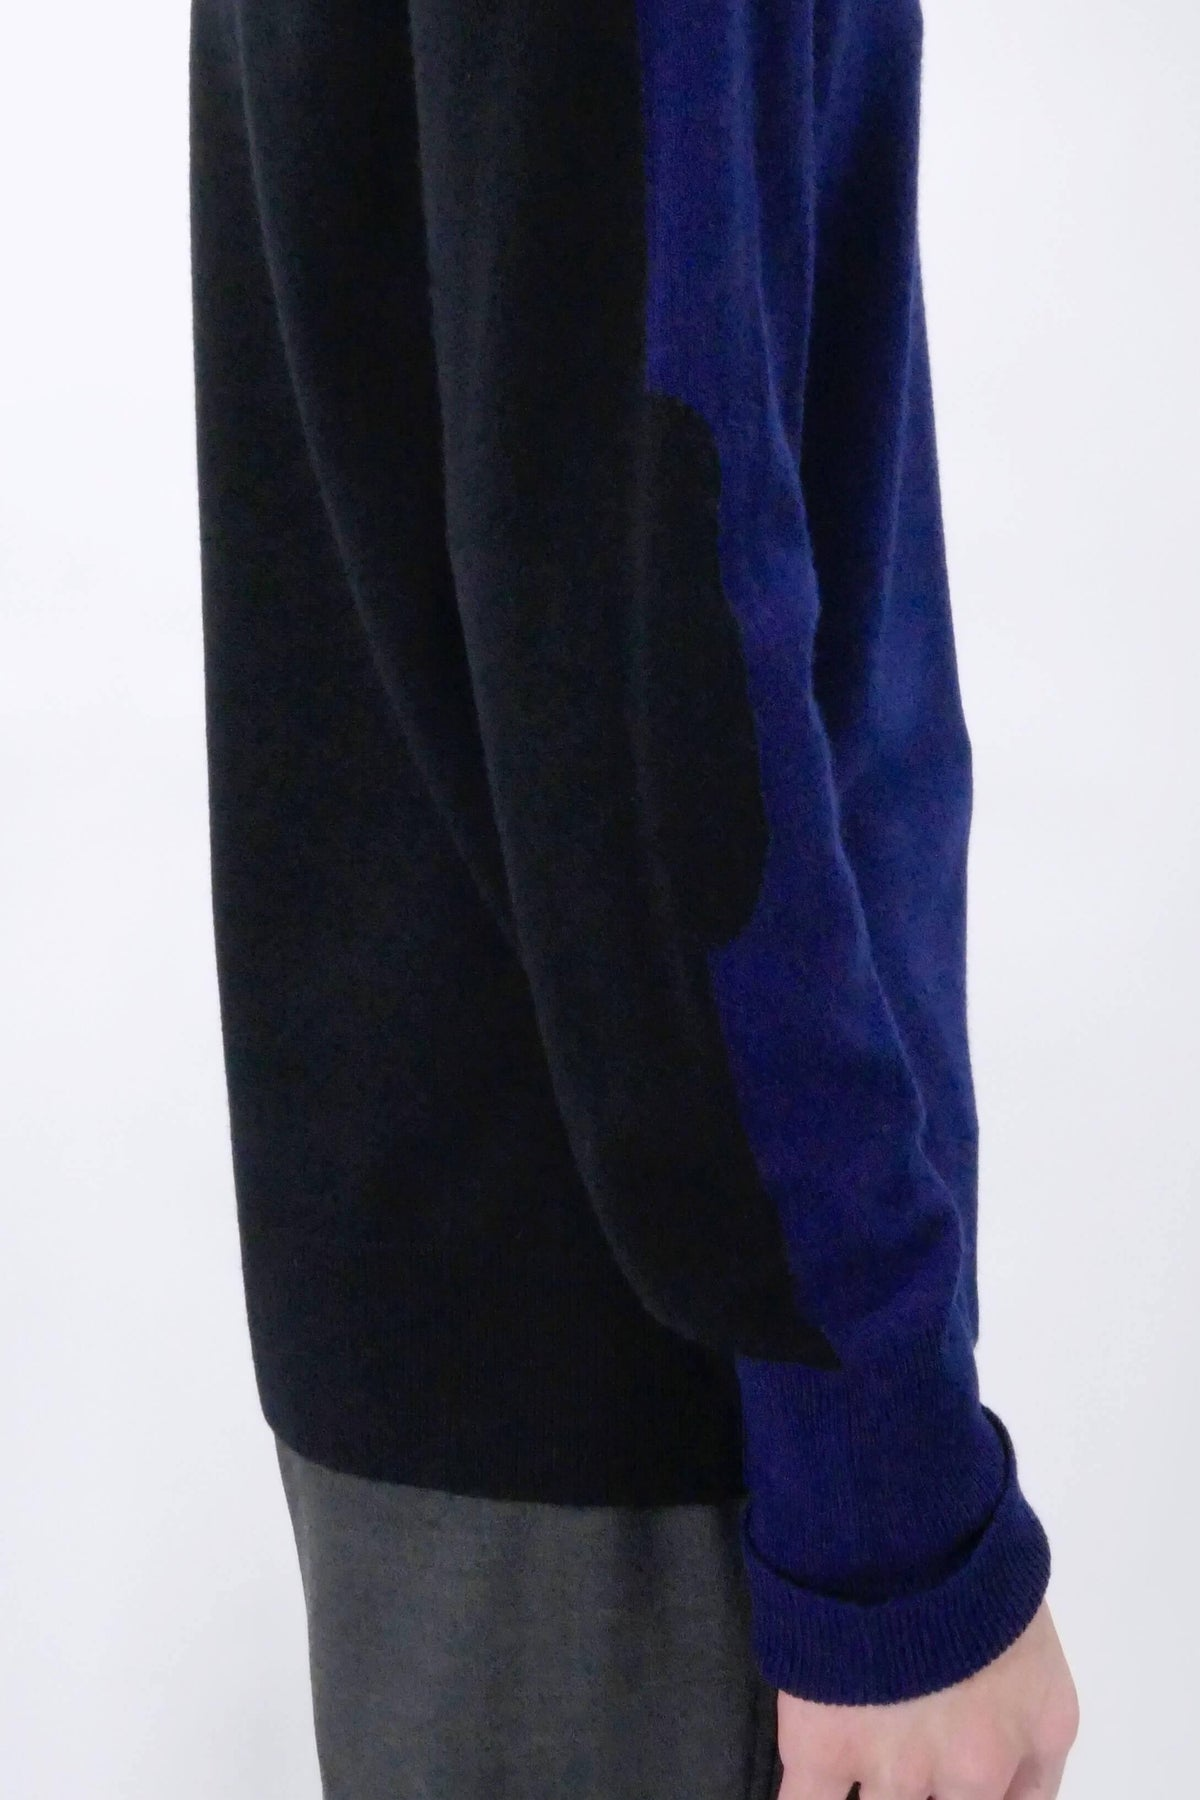 Neil Barrett Contrast Back Sweater - Navy/Black